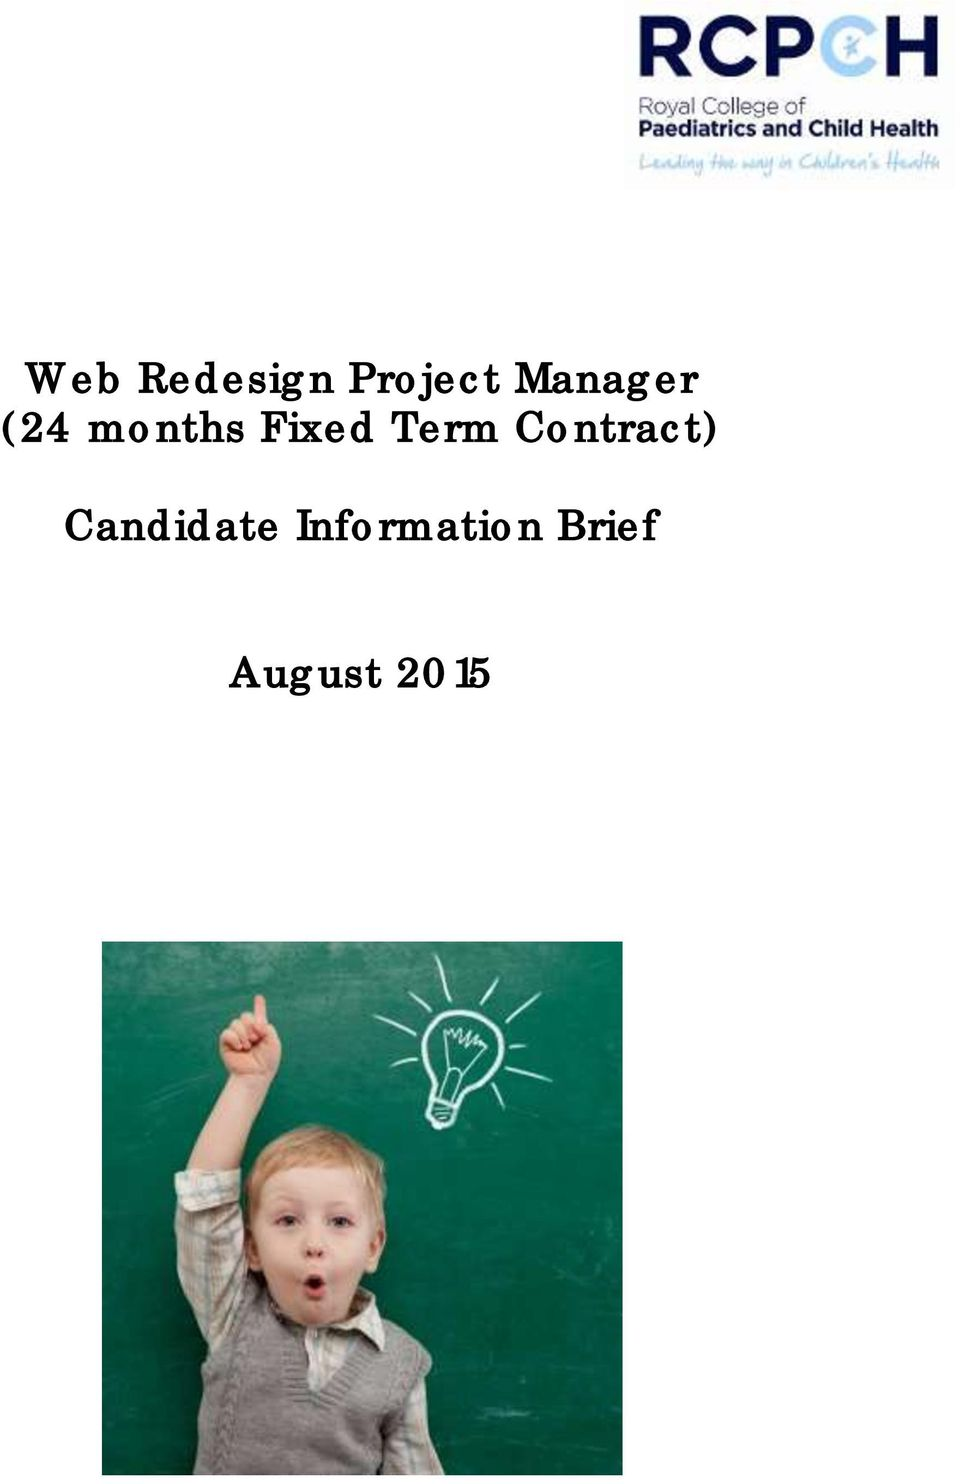 Term Contract) Candidate